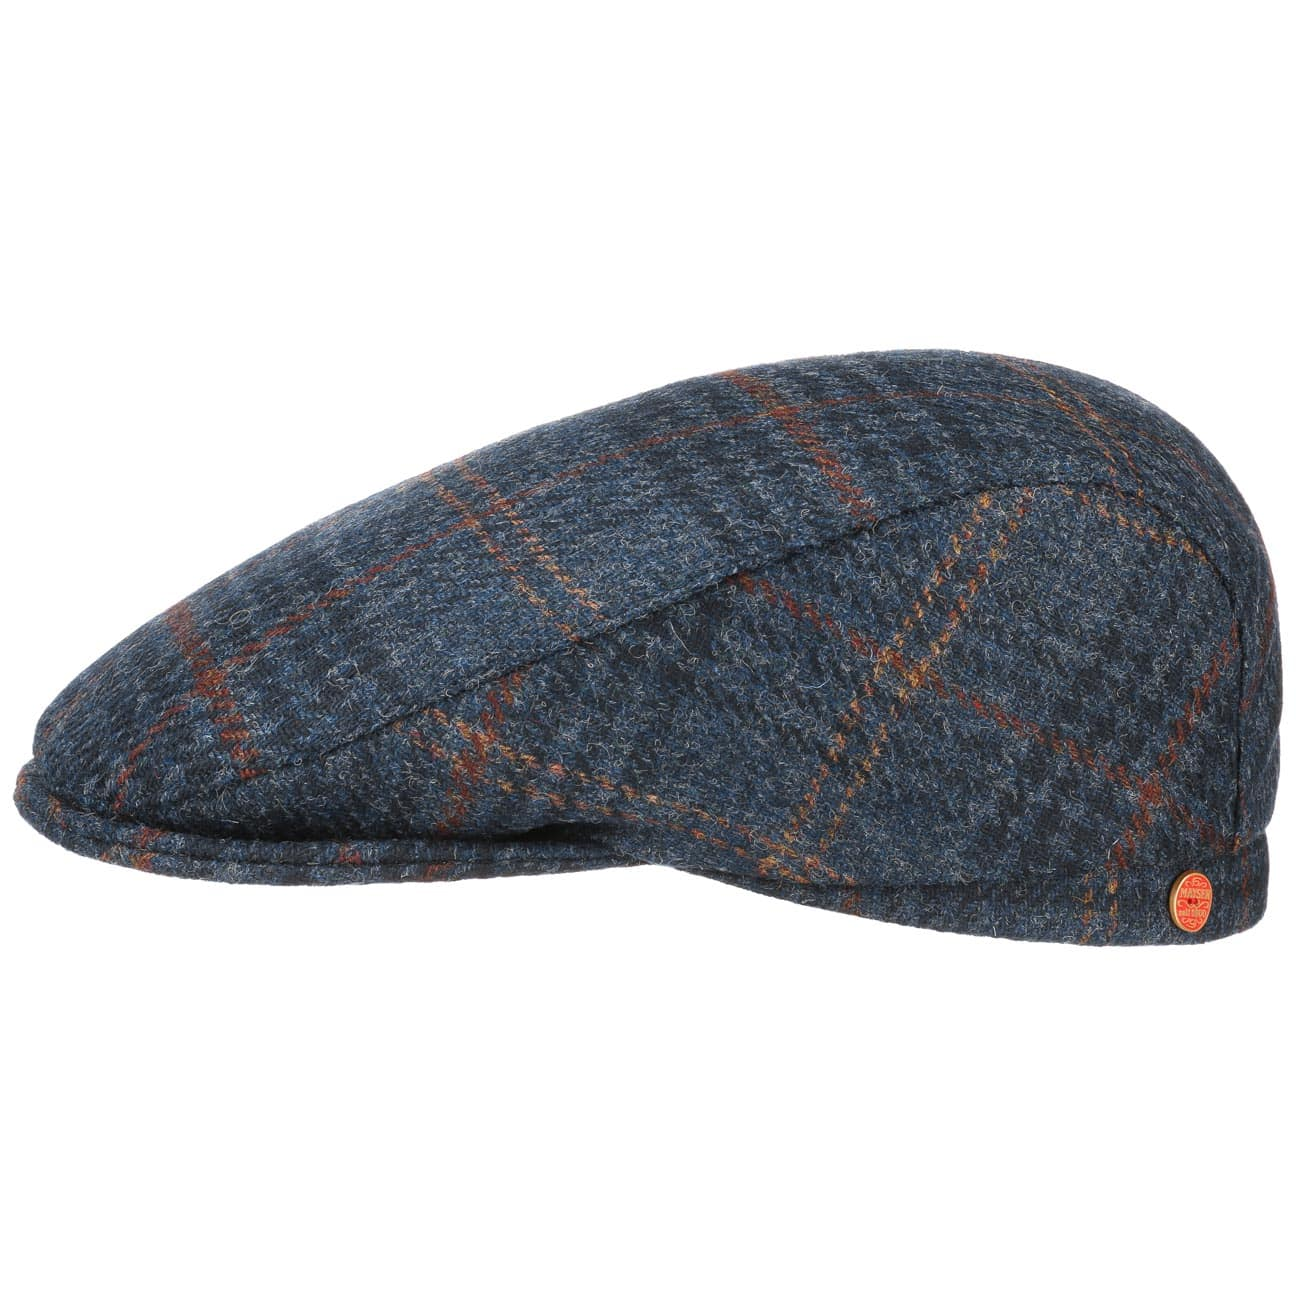 Casquette Frankie Soft Shetland Wool by Mayser  casquette laine